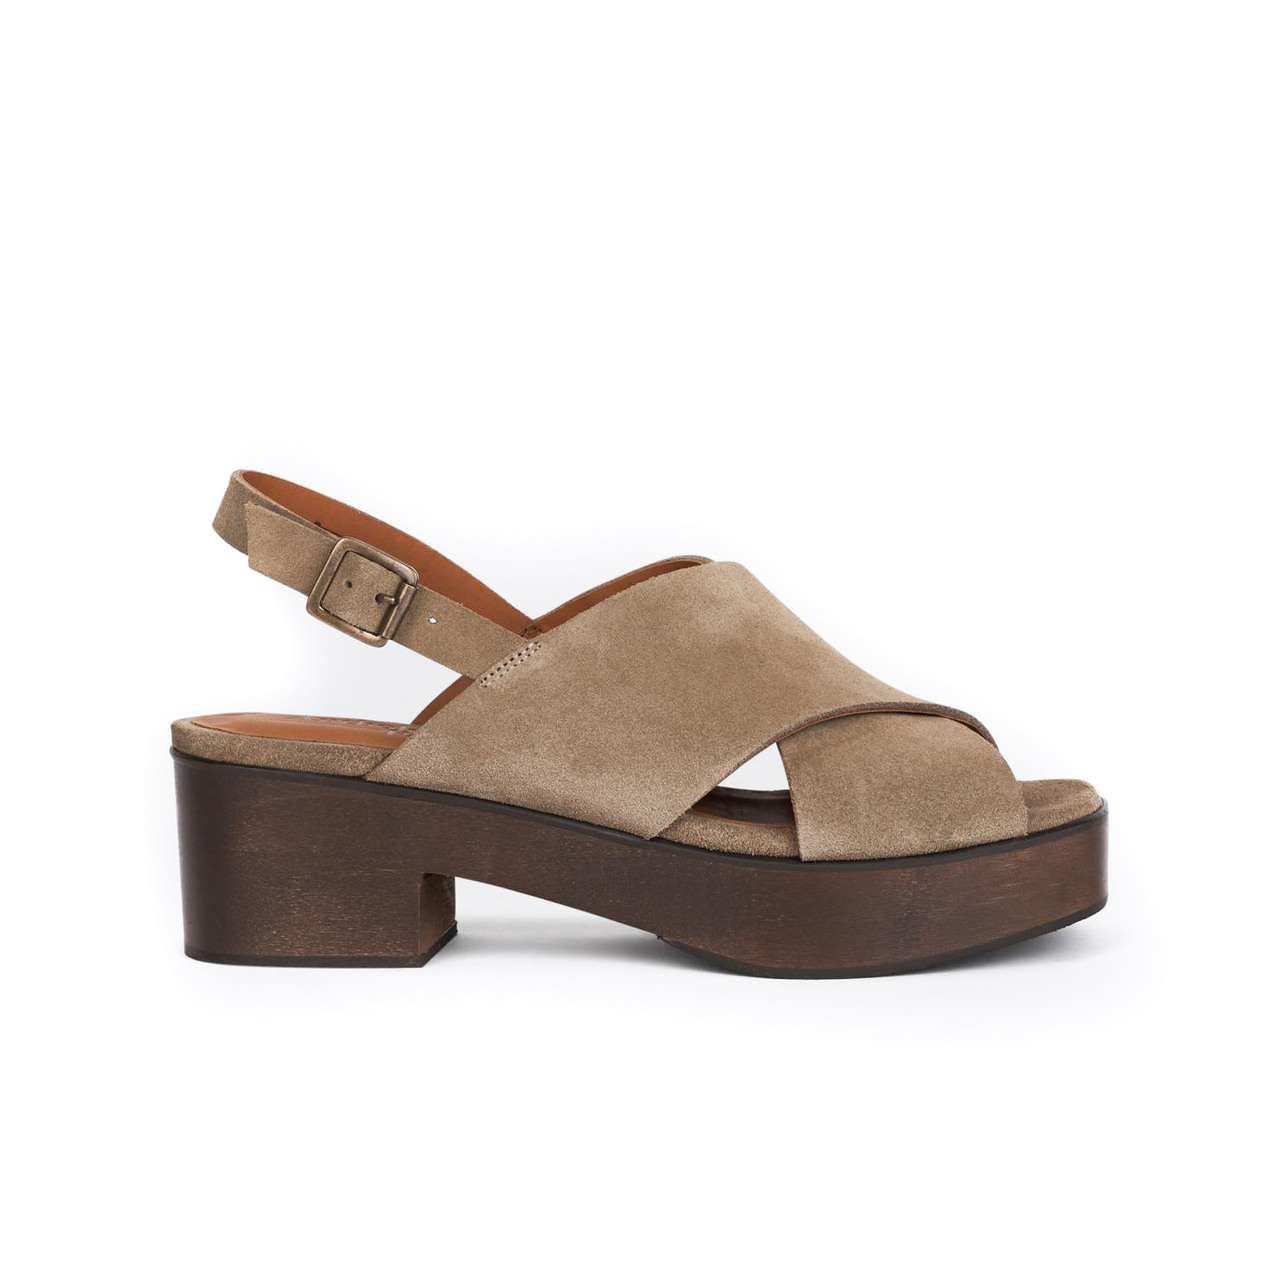 Tolle Plateau-Sandalen in Taupe